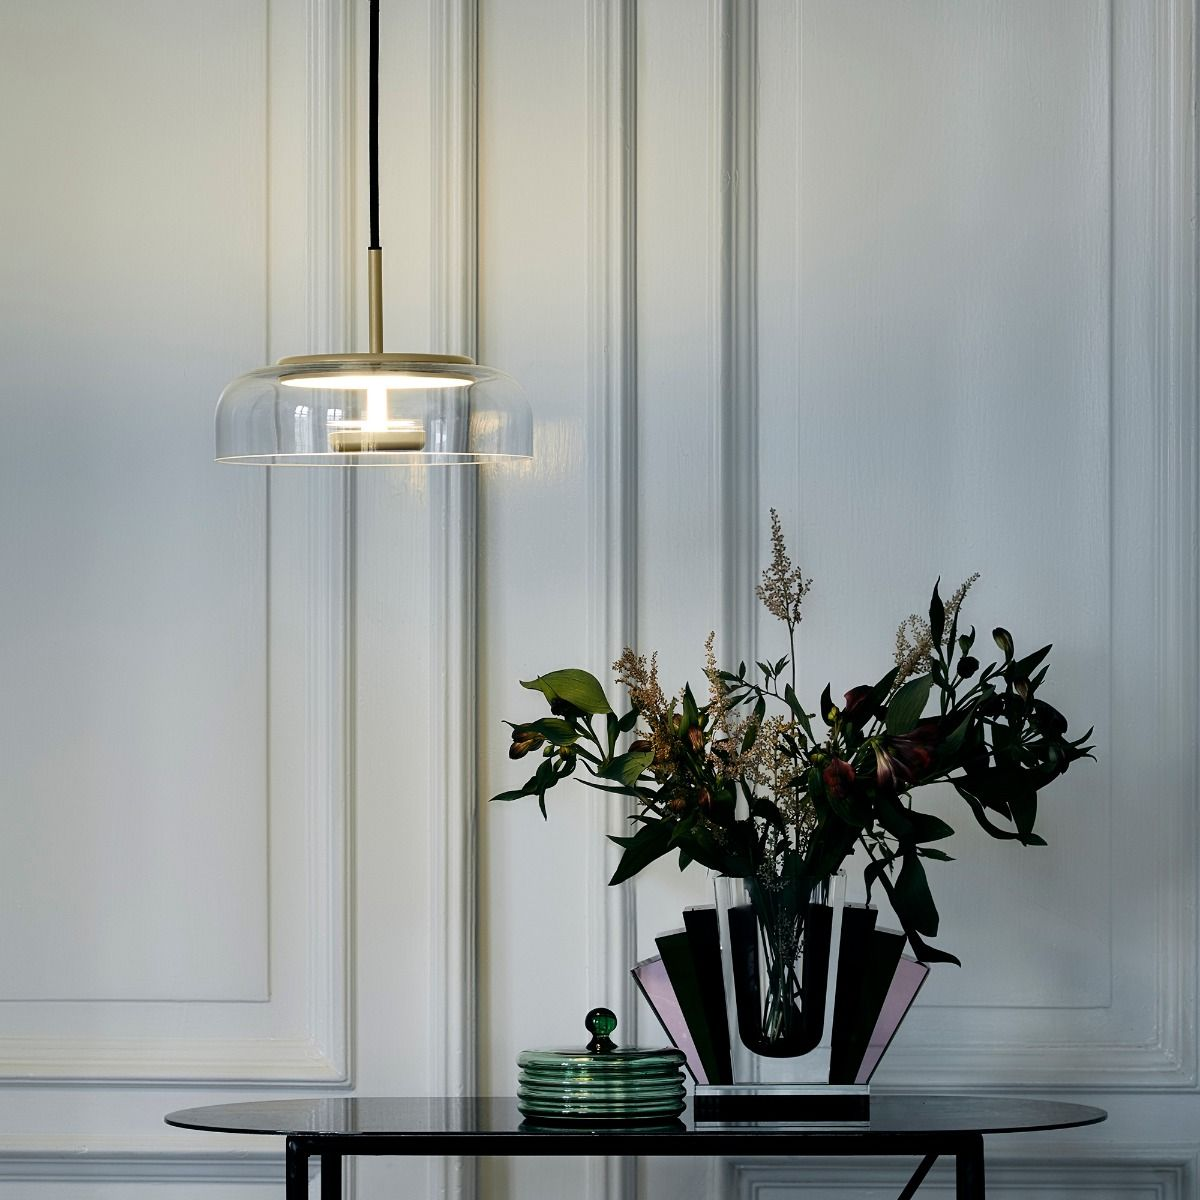 Blossi pendant light against wall paneling